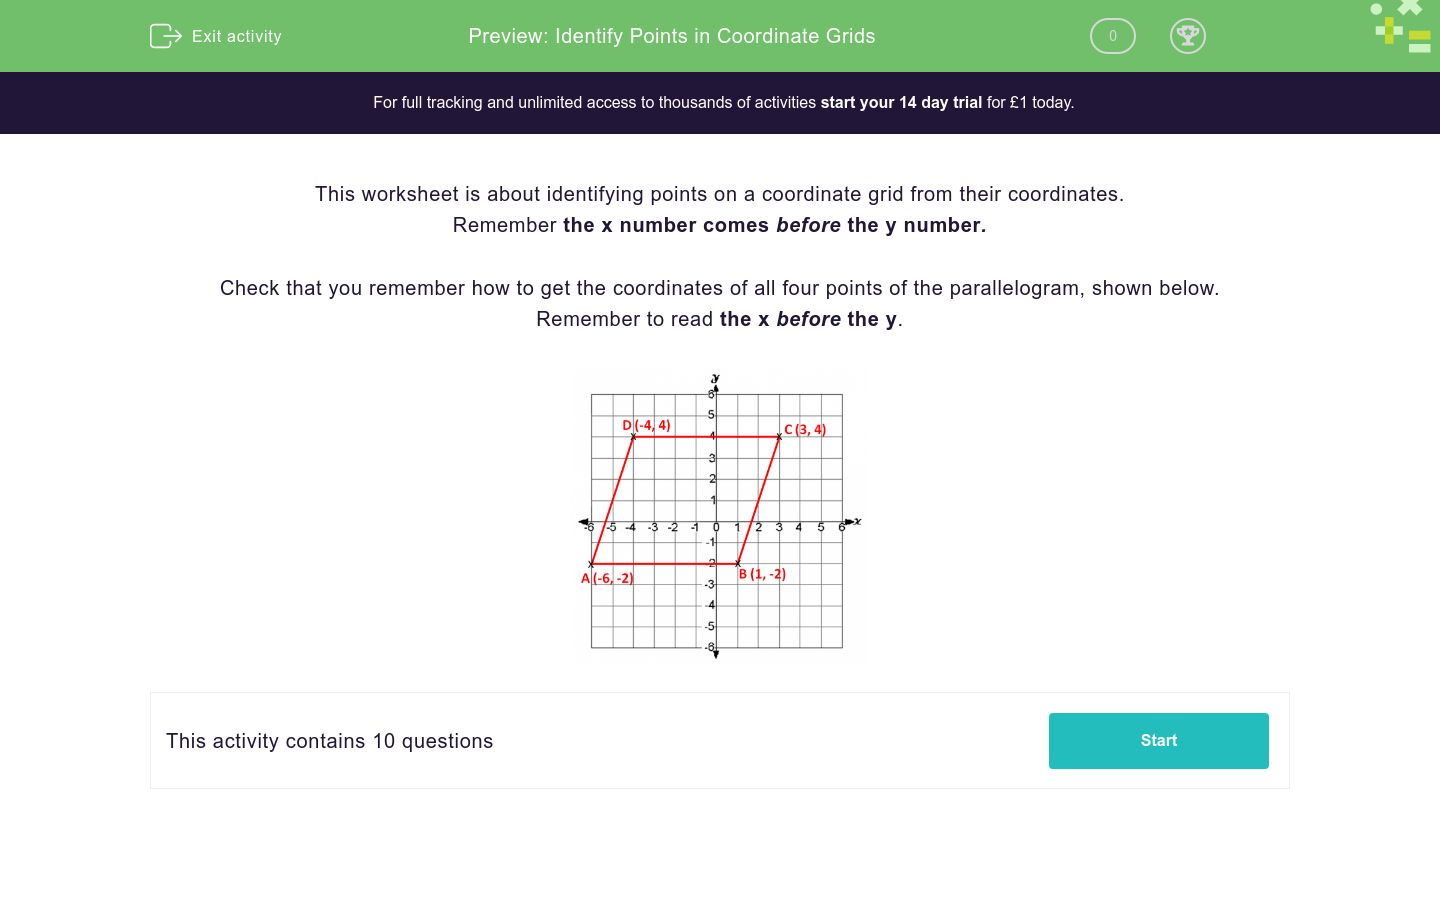 'Identify Points in Coordinate Grids' worksheet